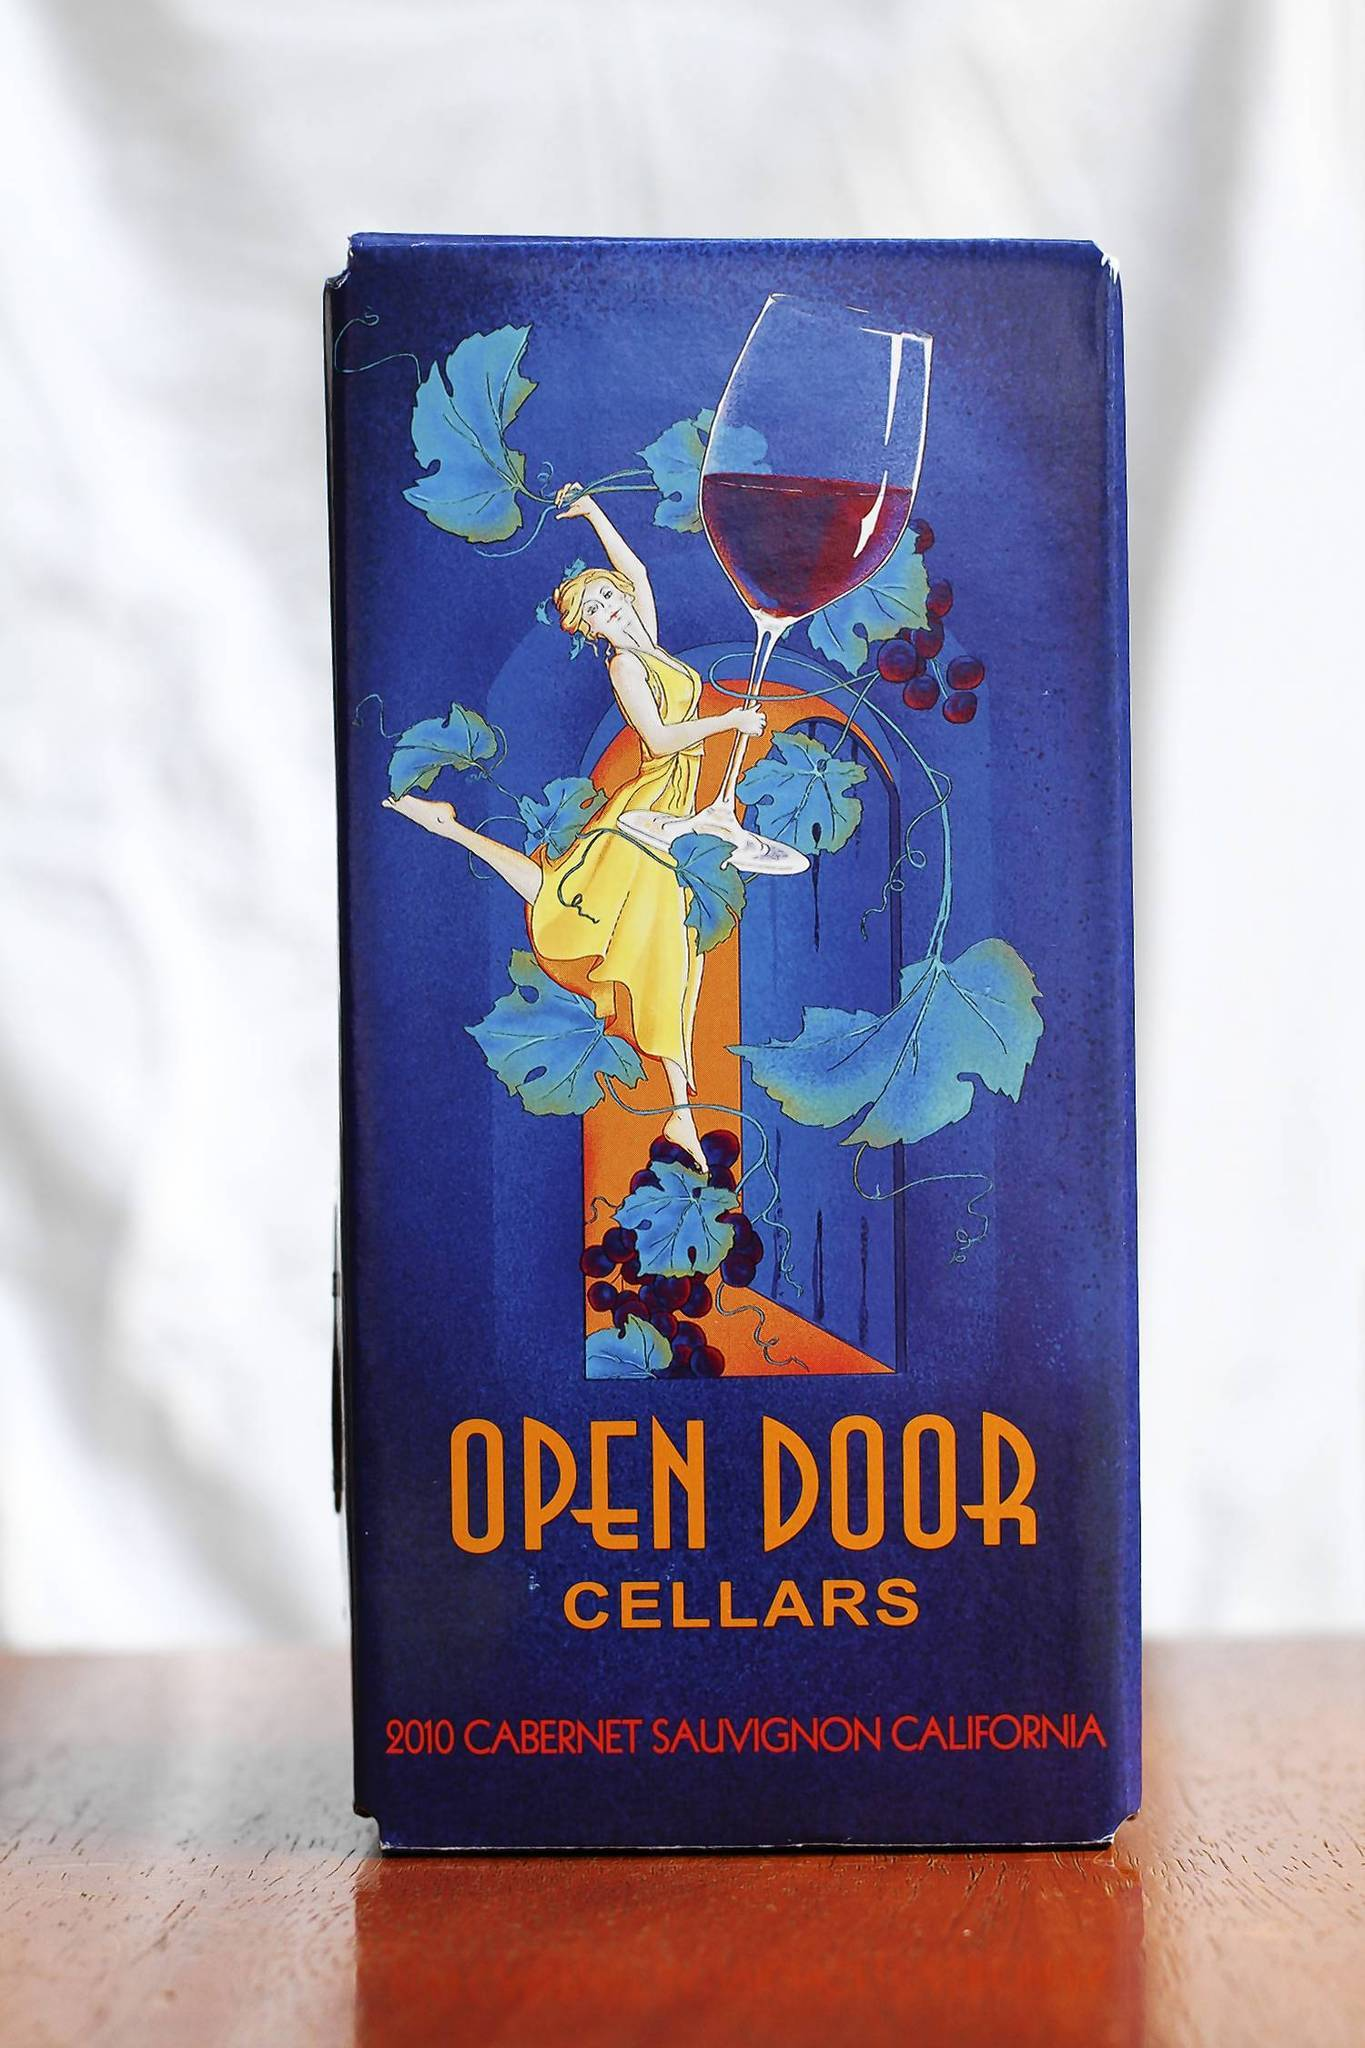 2010 Open Door Cellars Cabernet Sauvignon